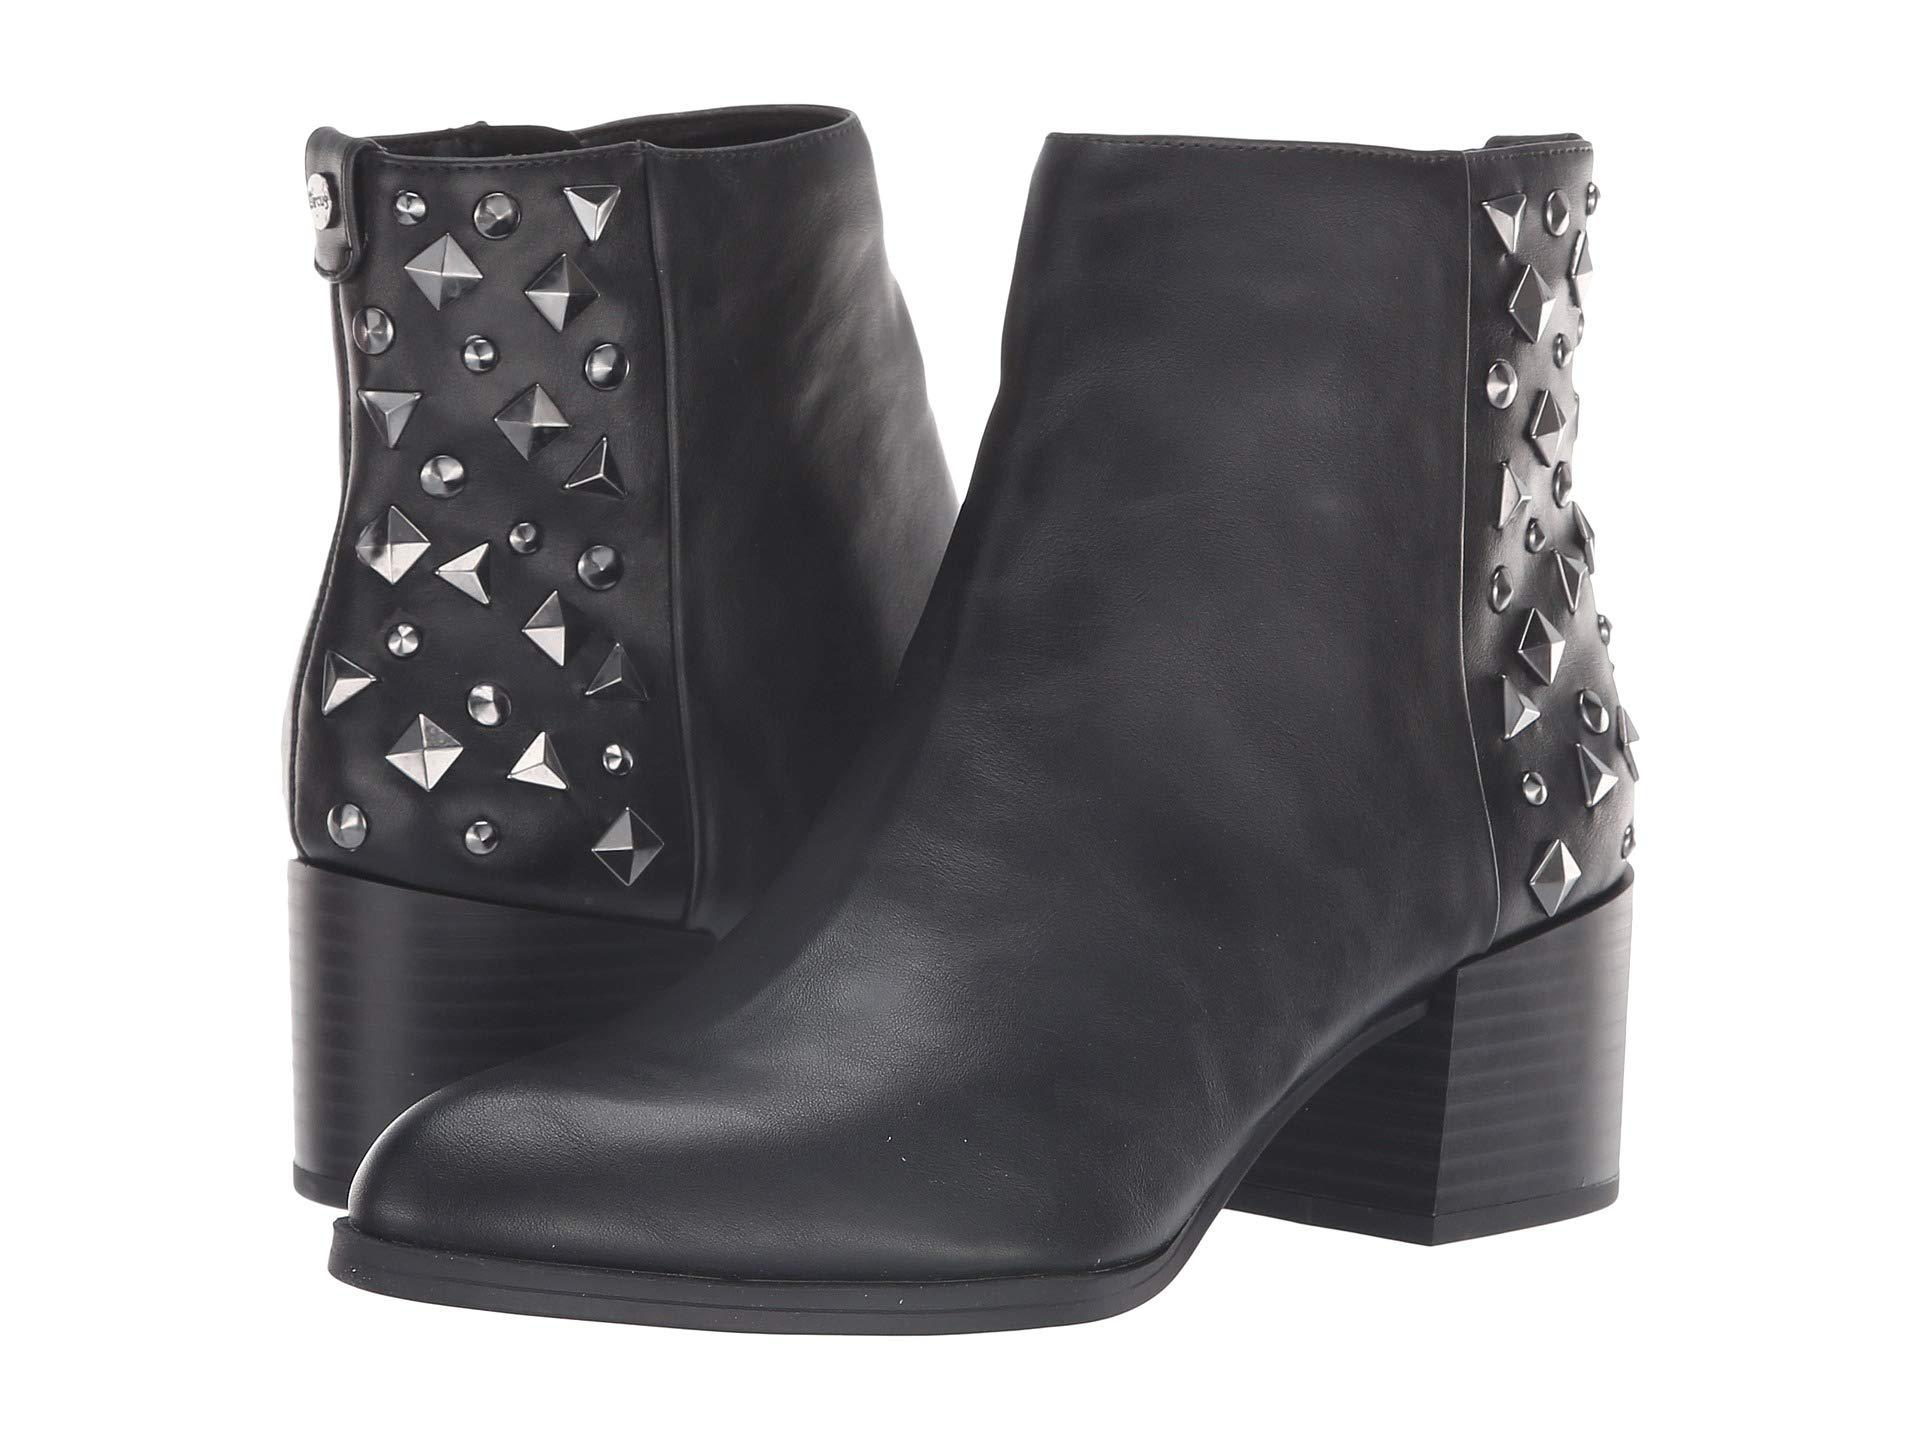 1eb79d5909e63e Lyst - Circus by Sam Edelman Jaimee Fashion Boot in Black - Save 7%